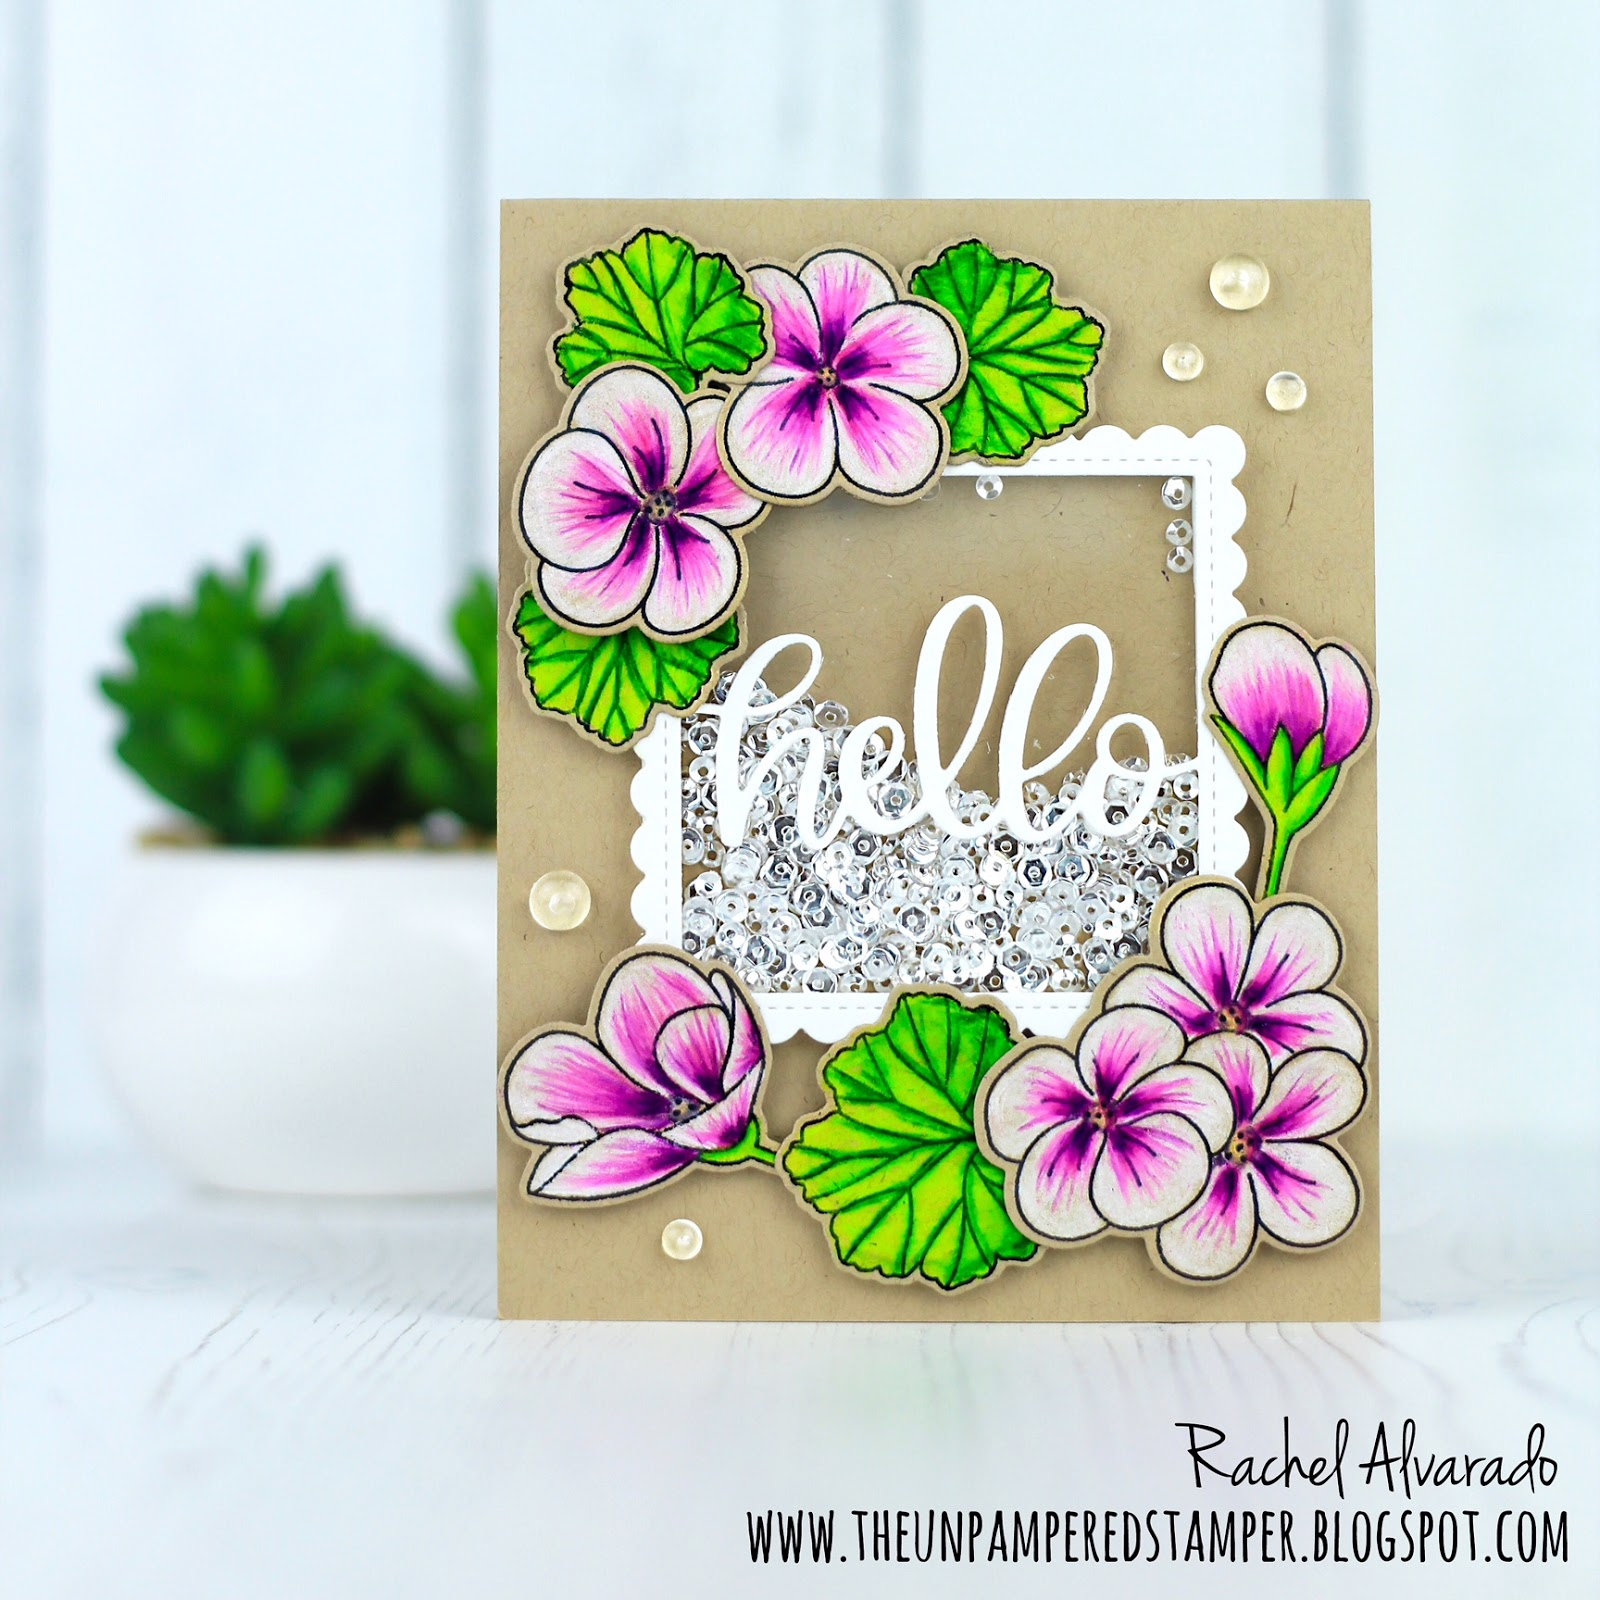 I First Stamped My Flowers And Leaves Onto Kraft Card